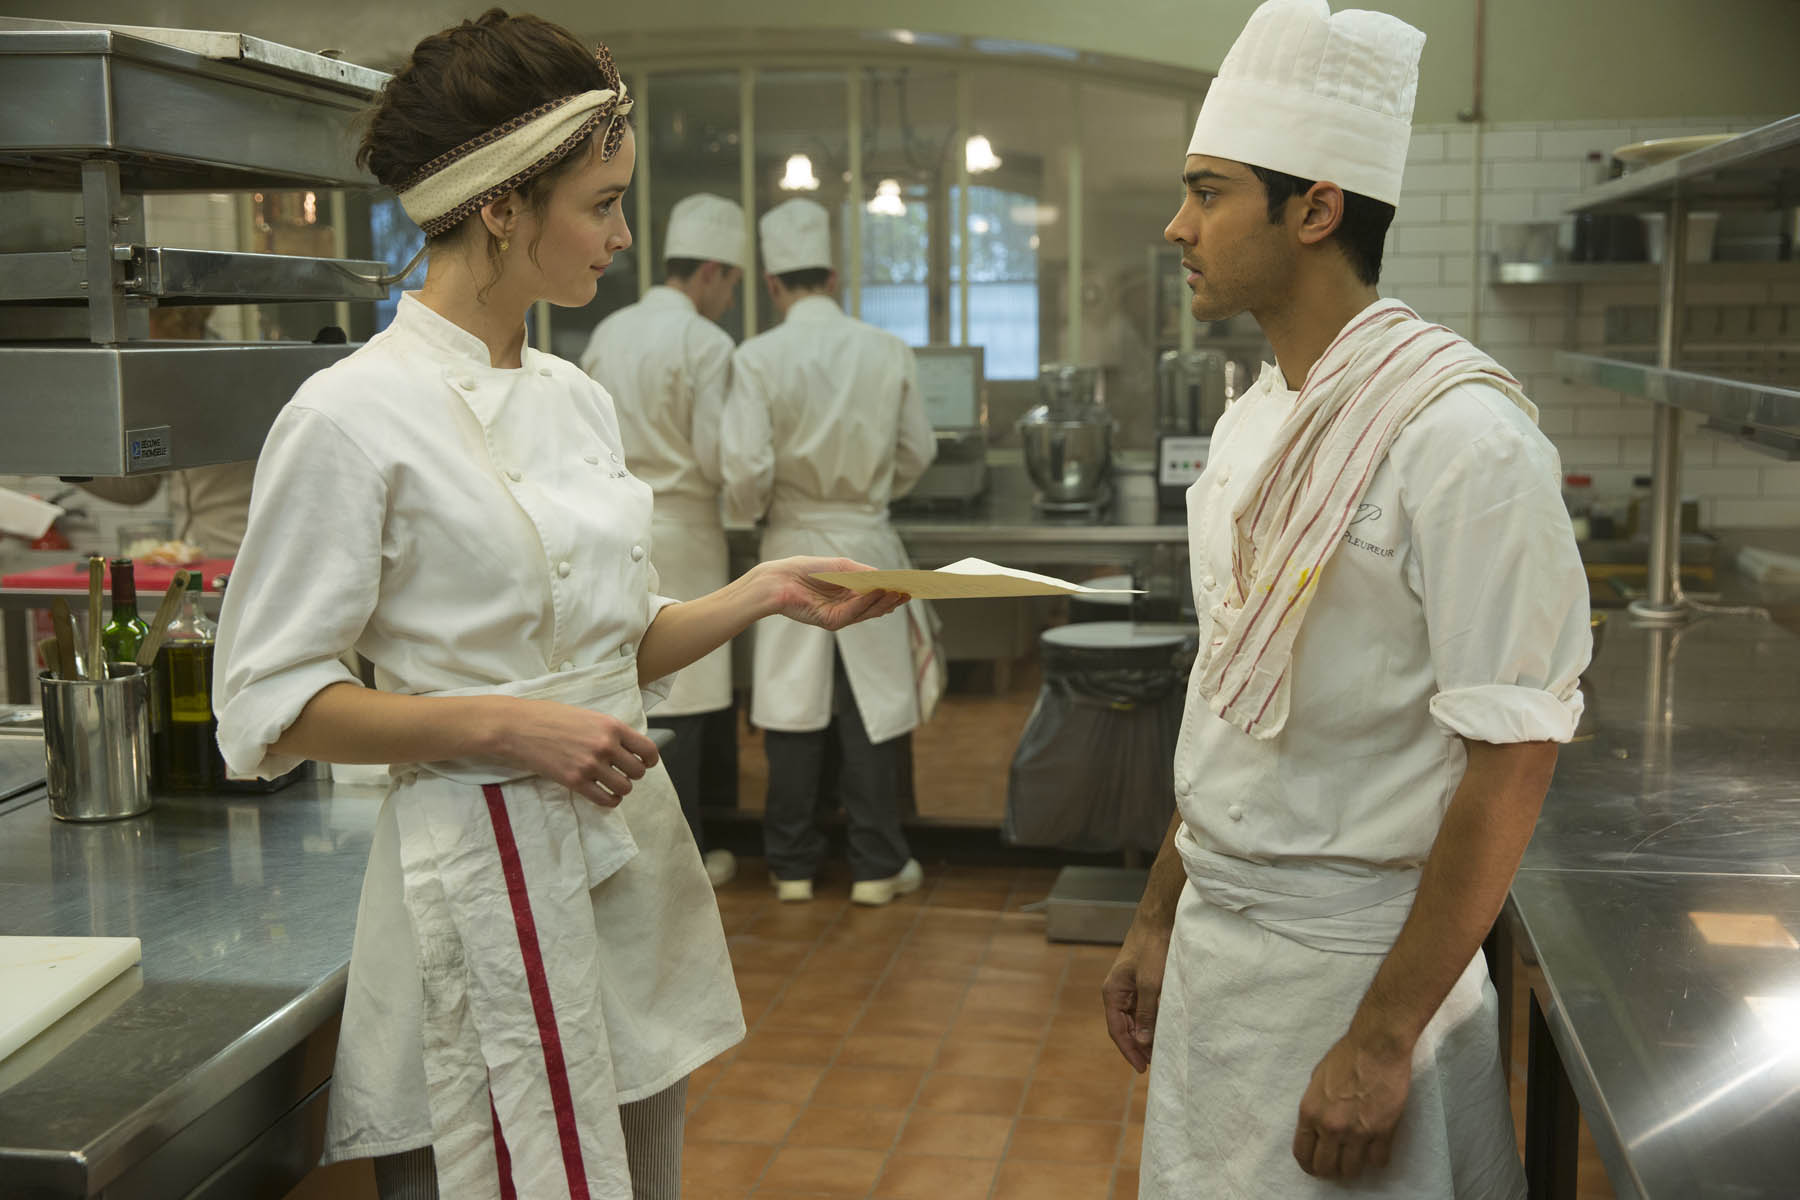 Clash Of Culinary Cultures In The Hundred Foot Journey